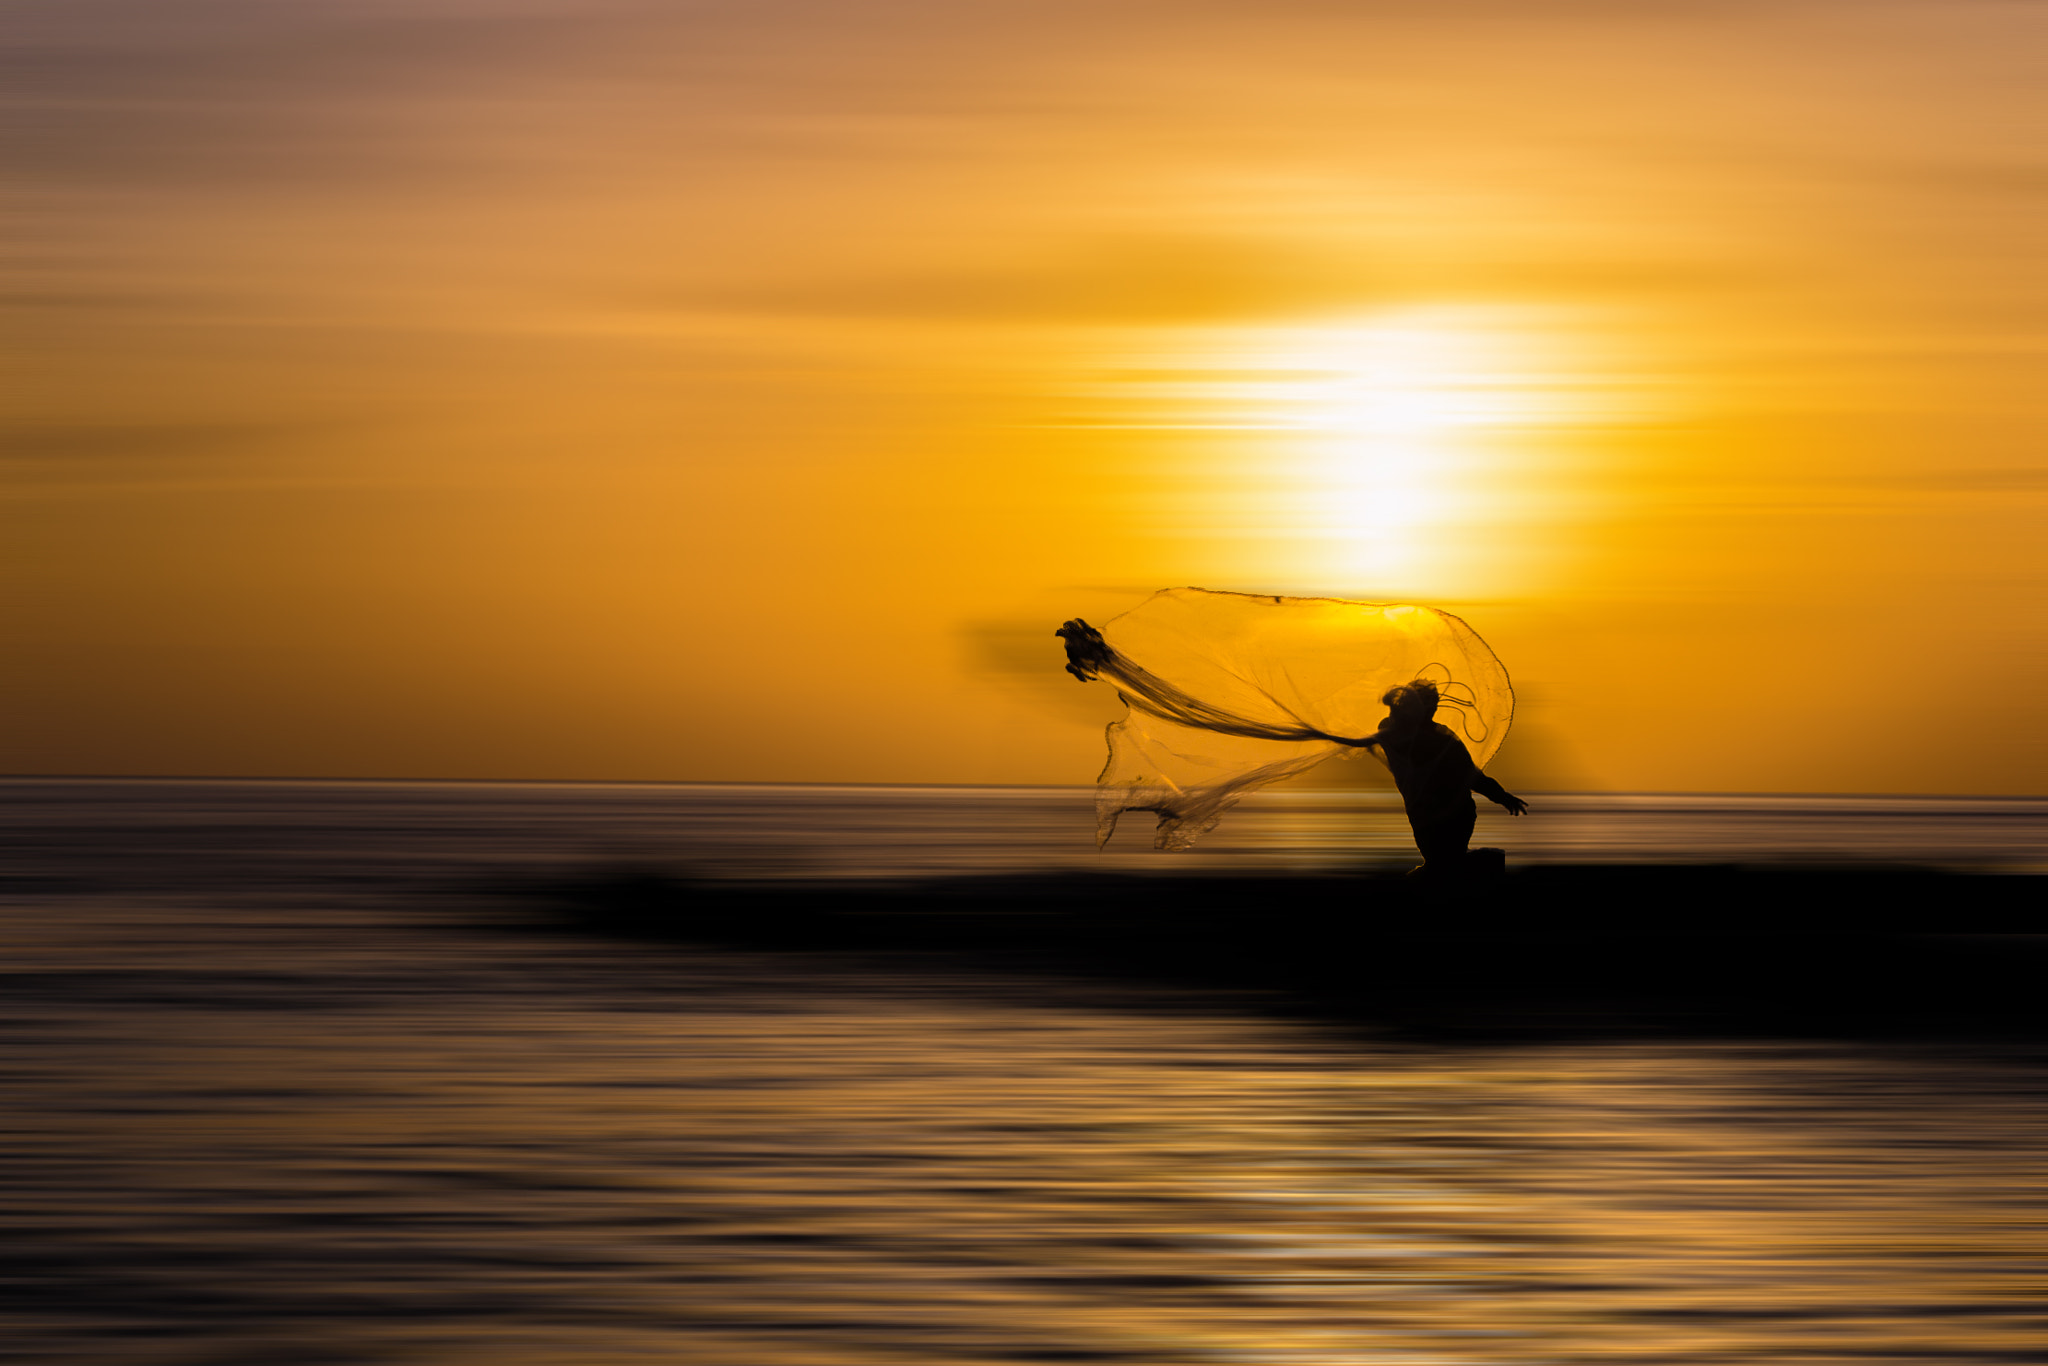 Photograph Catching The Sun. by Faizol Subhi on 500px